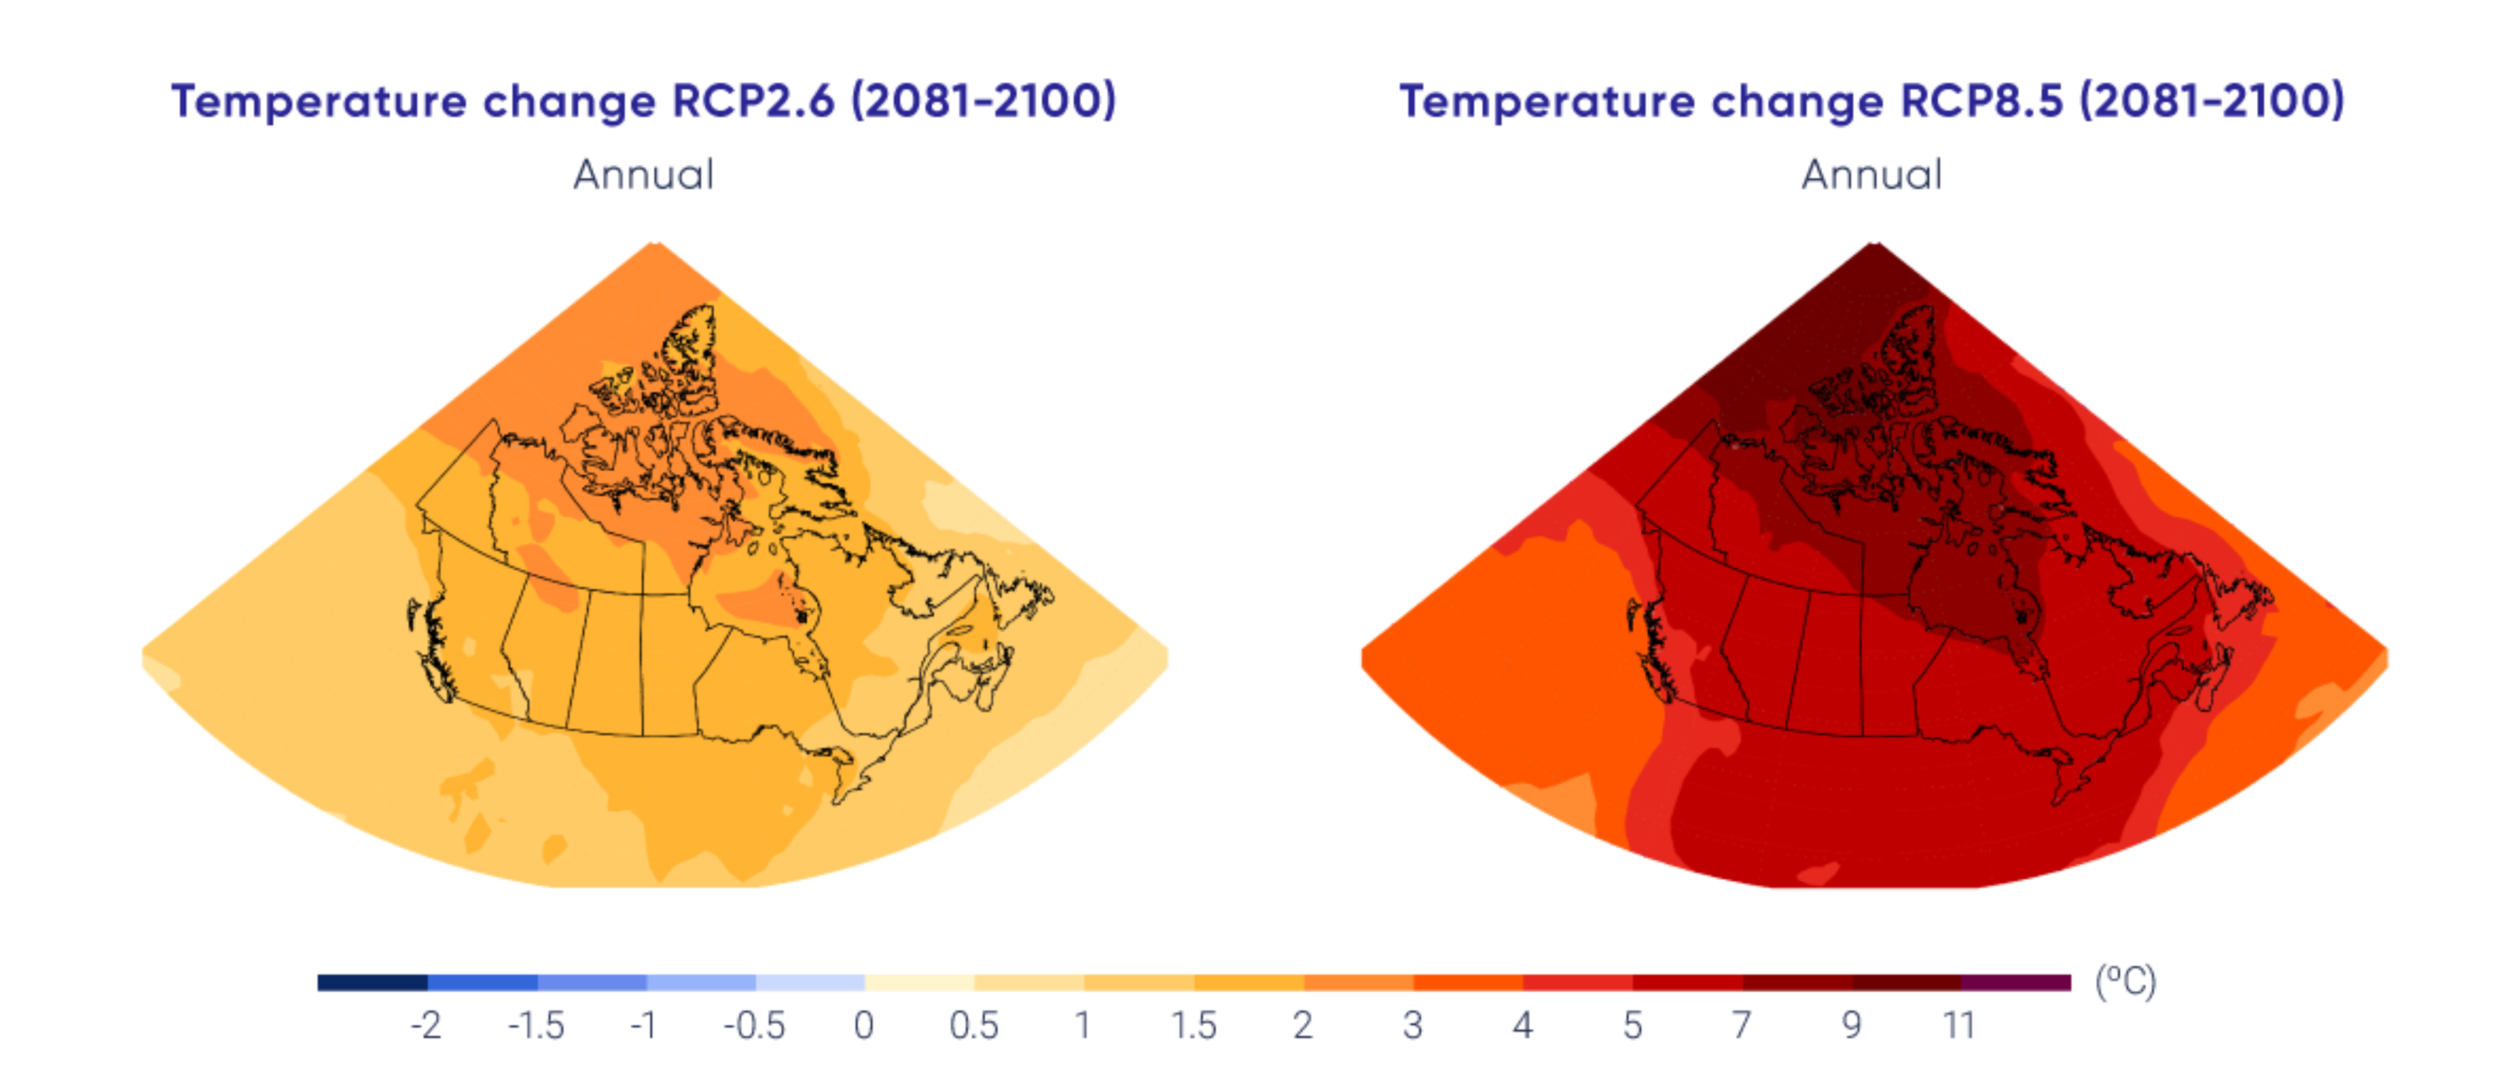 Canada's Climate Change Report 2019: Projected annual temperature changes, low-emission scenario (left), high-emission scenario (right).